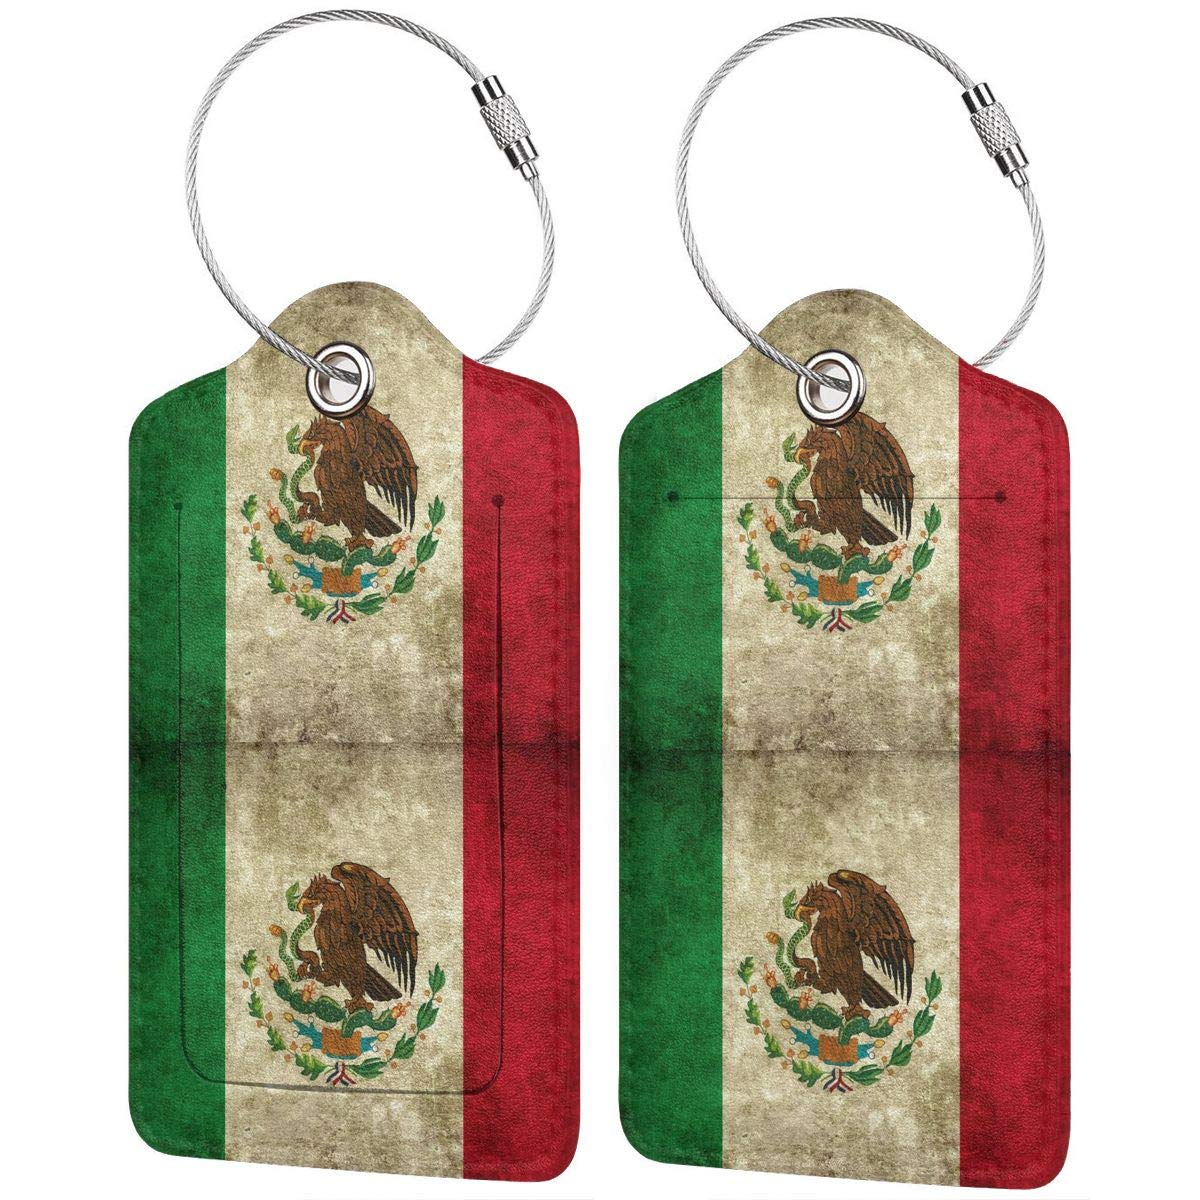 Mexican Flag Leather Luggage Tags Personalized Extra Address Cards With Adjustable Strap